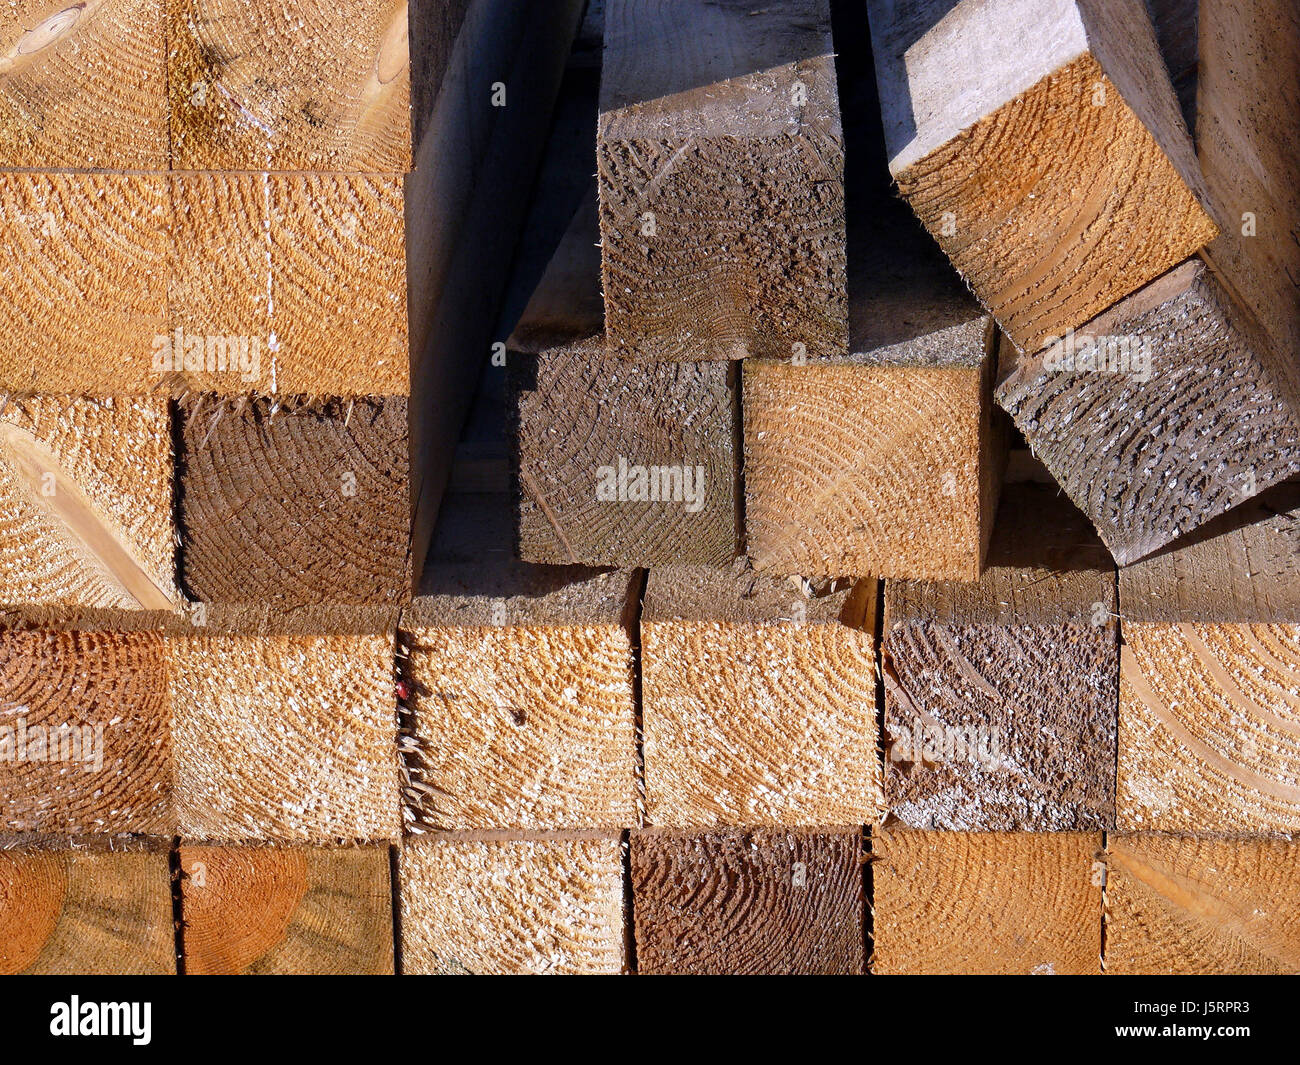 wood saw stacked cut myth building material say sawn said material nature - Stock Image